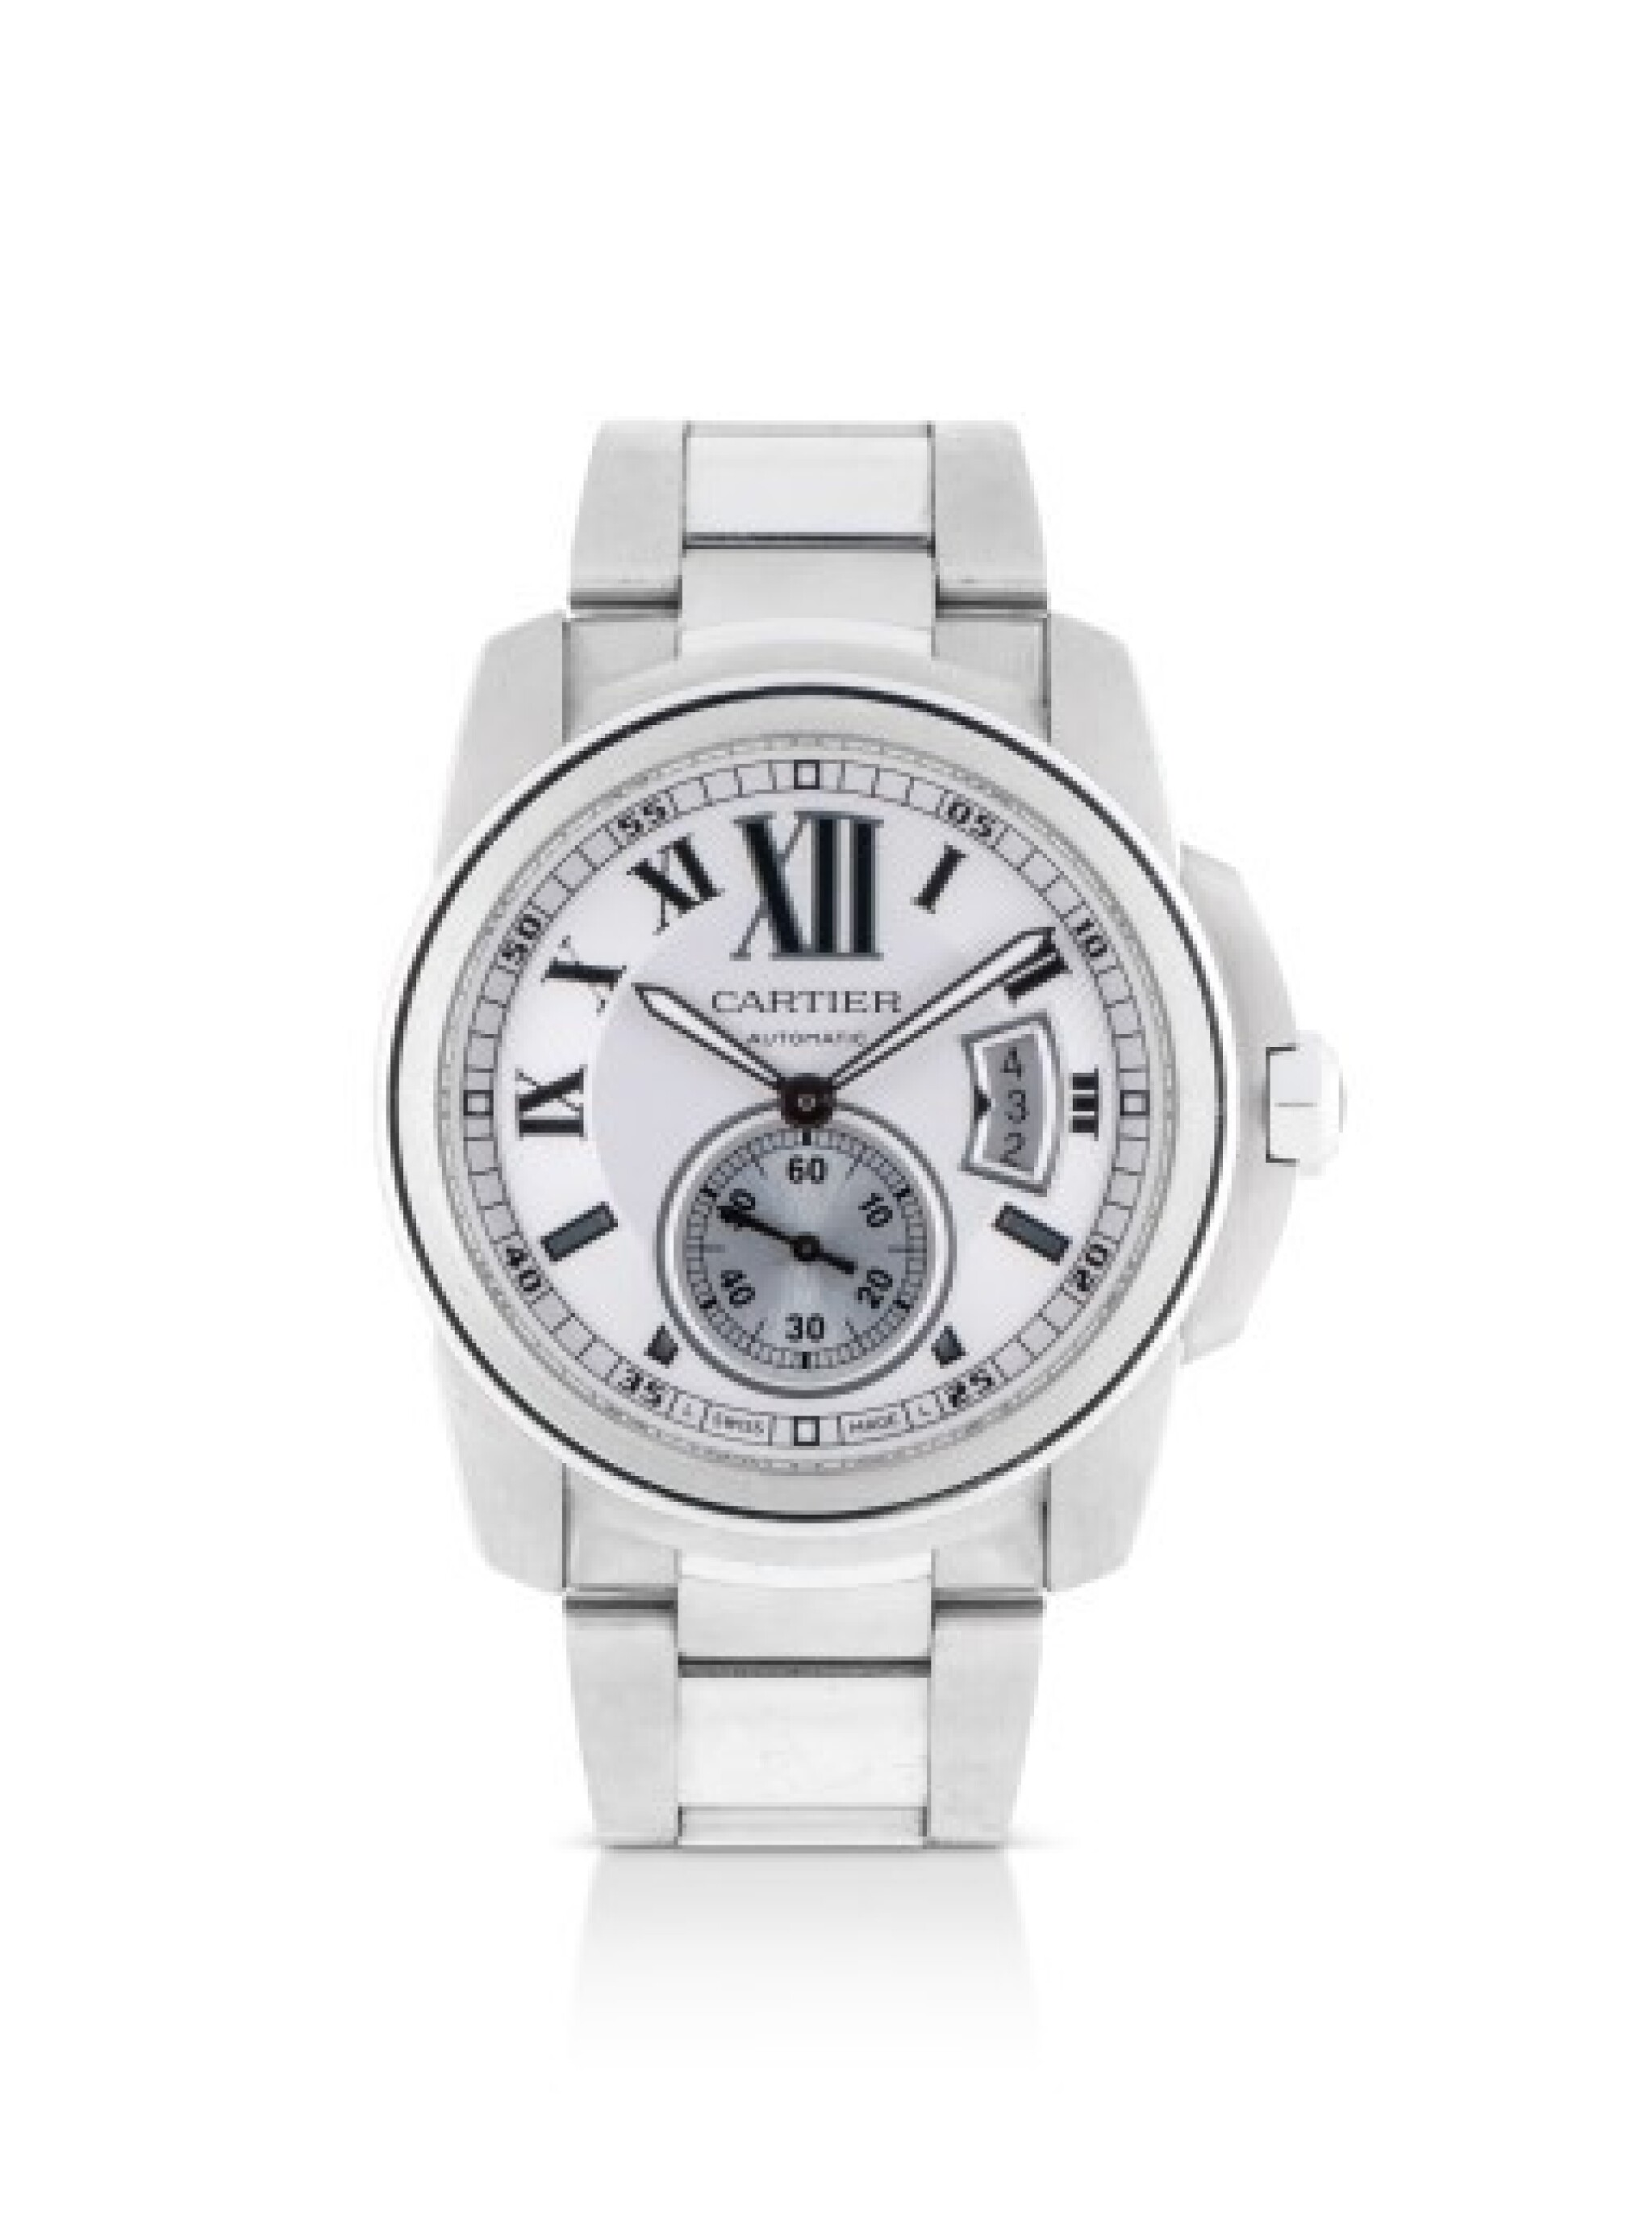 CARTIER | CALIBRE DE CARTIER, REFERENCE 3389, STAINLESS STEEL WRISTWATCH WITH DATE AND BRACELET, CIRCA 2011